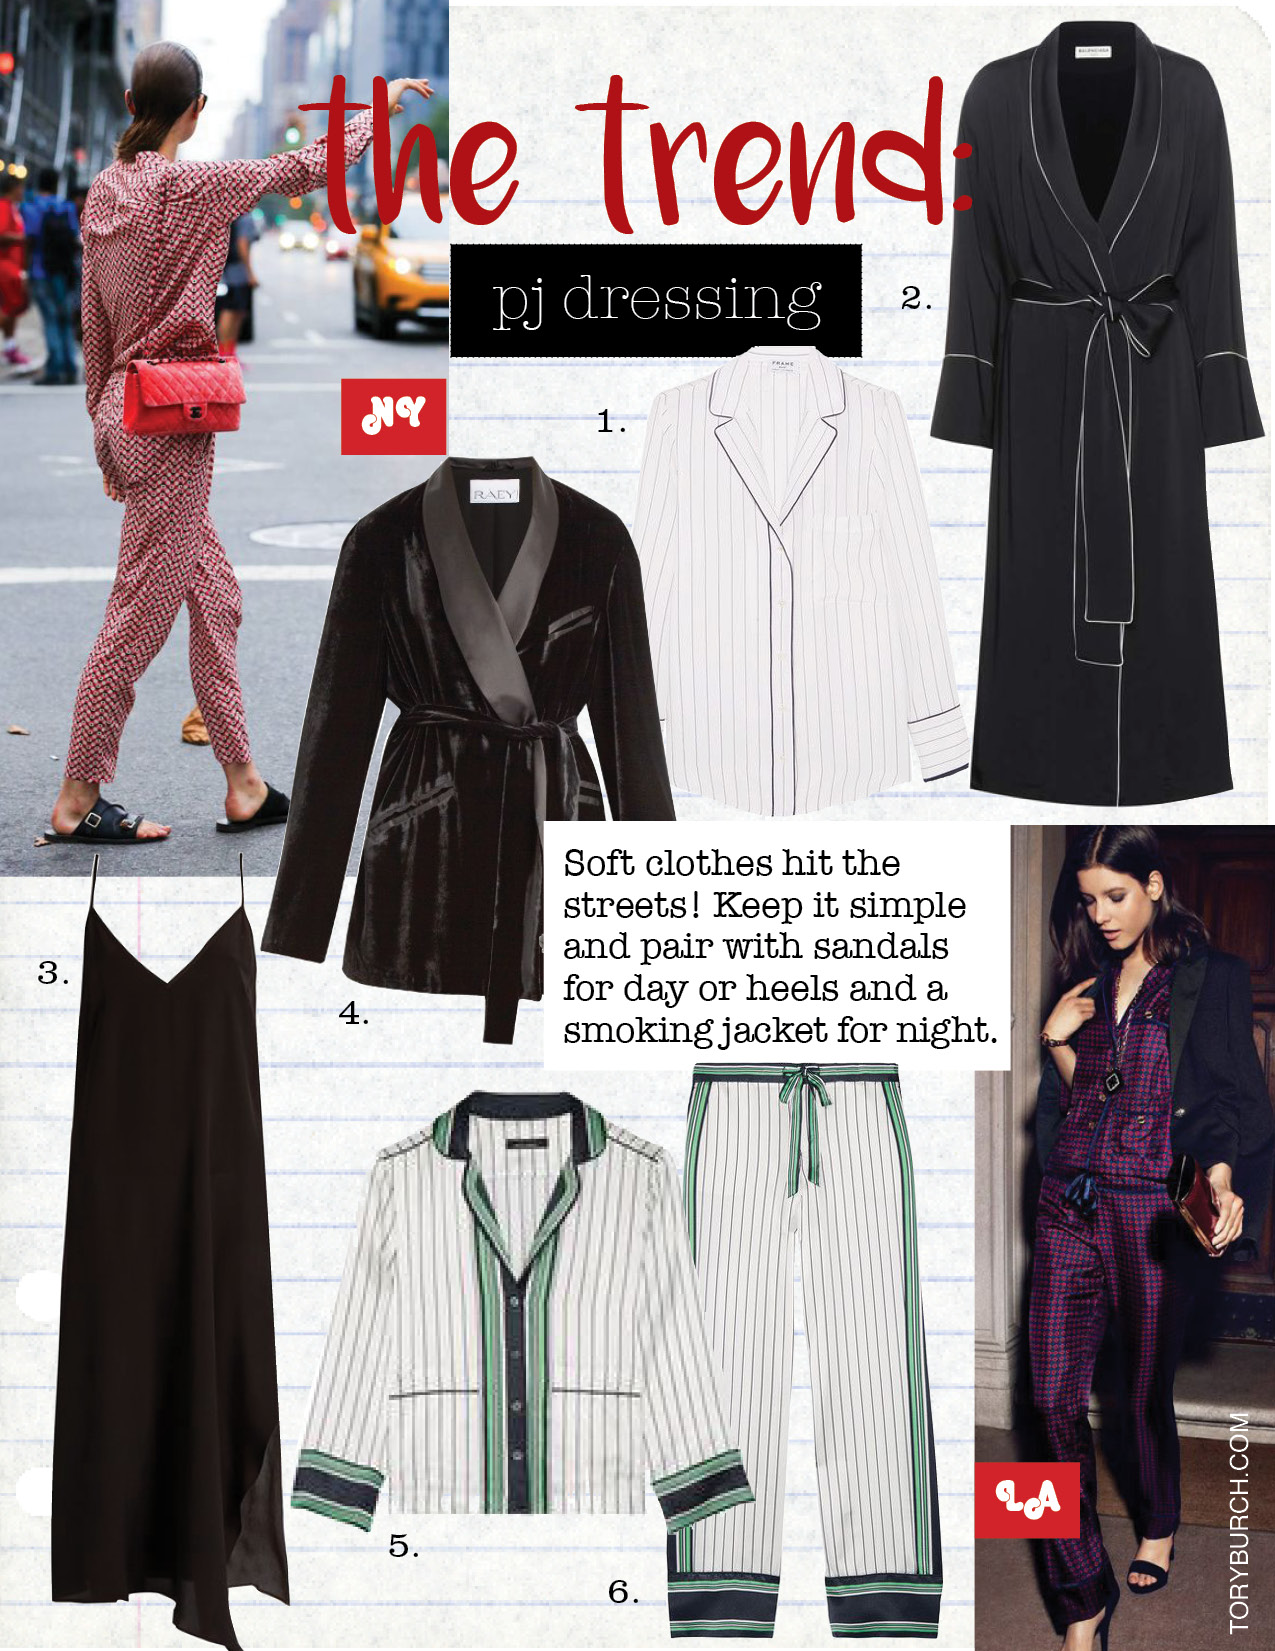 1. frame striped silk shirt, $275,  net-a-porter.com  2. balenciaga satin robe, $2050,  mytheresa.com  3. raey asymmetric-hem silk slip dress, $225,  Matchesfashion.com  4. raey velvet smoking jacket, $743,  matchesfashion.com  5. kate moss for equipment lake striped silk-satin pajama shirt, $275,  net-a-porter.com  6. kate moss for equipment lake striped silk-satin pajama pants, $295,  net-a-porter.com